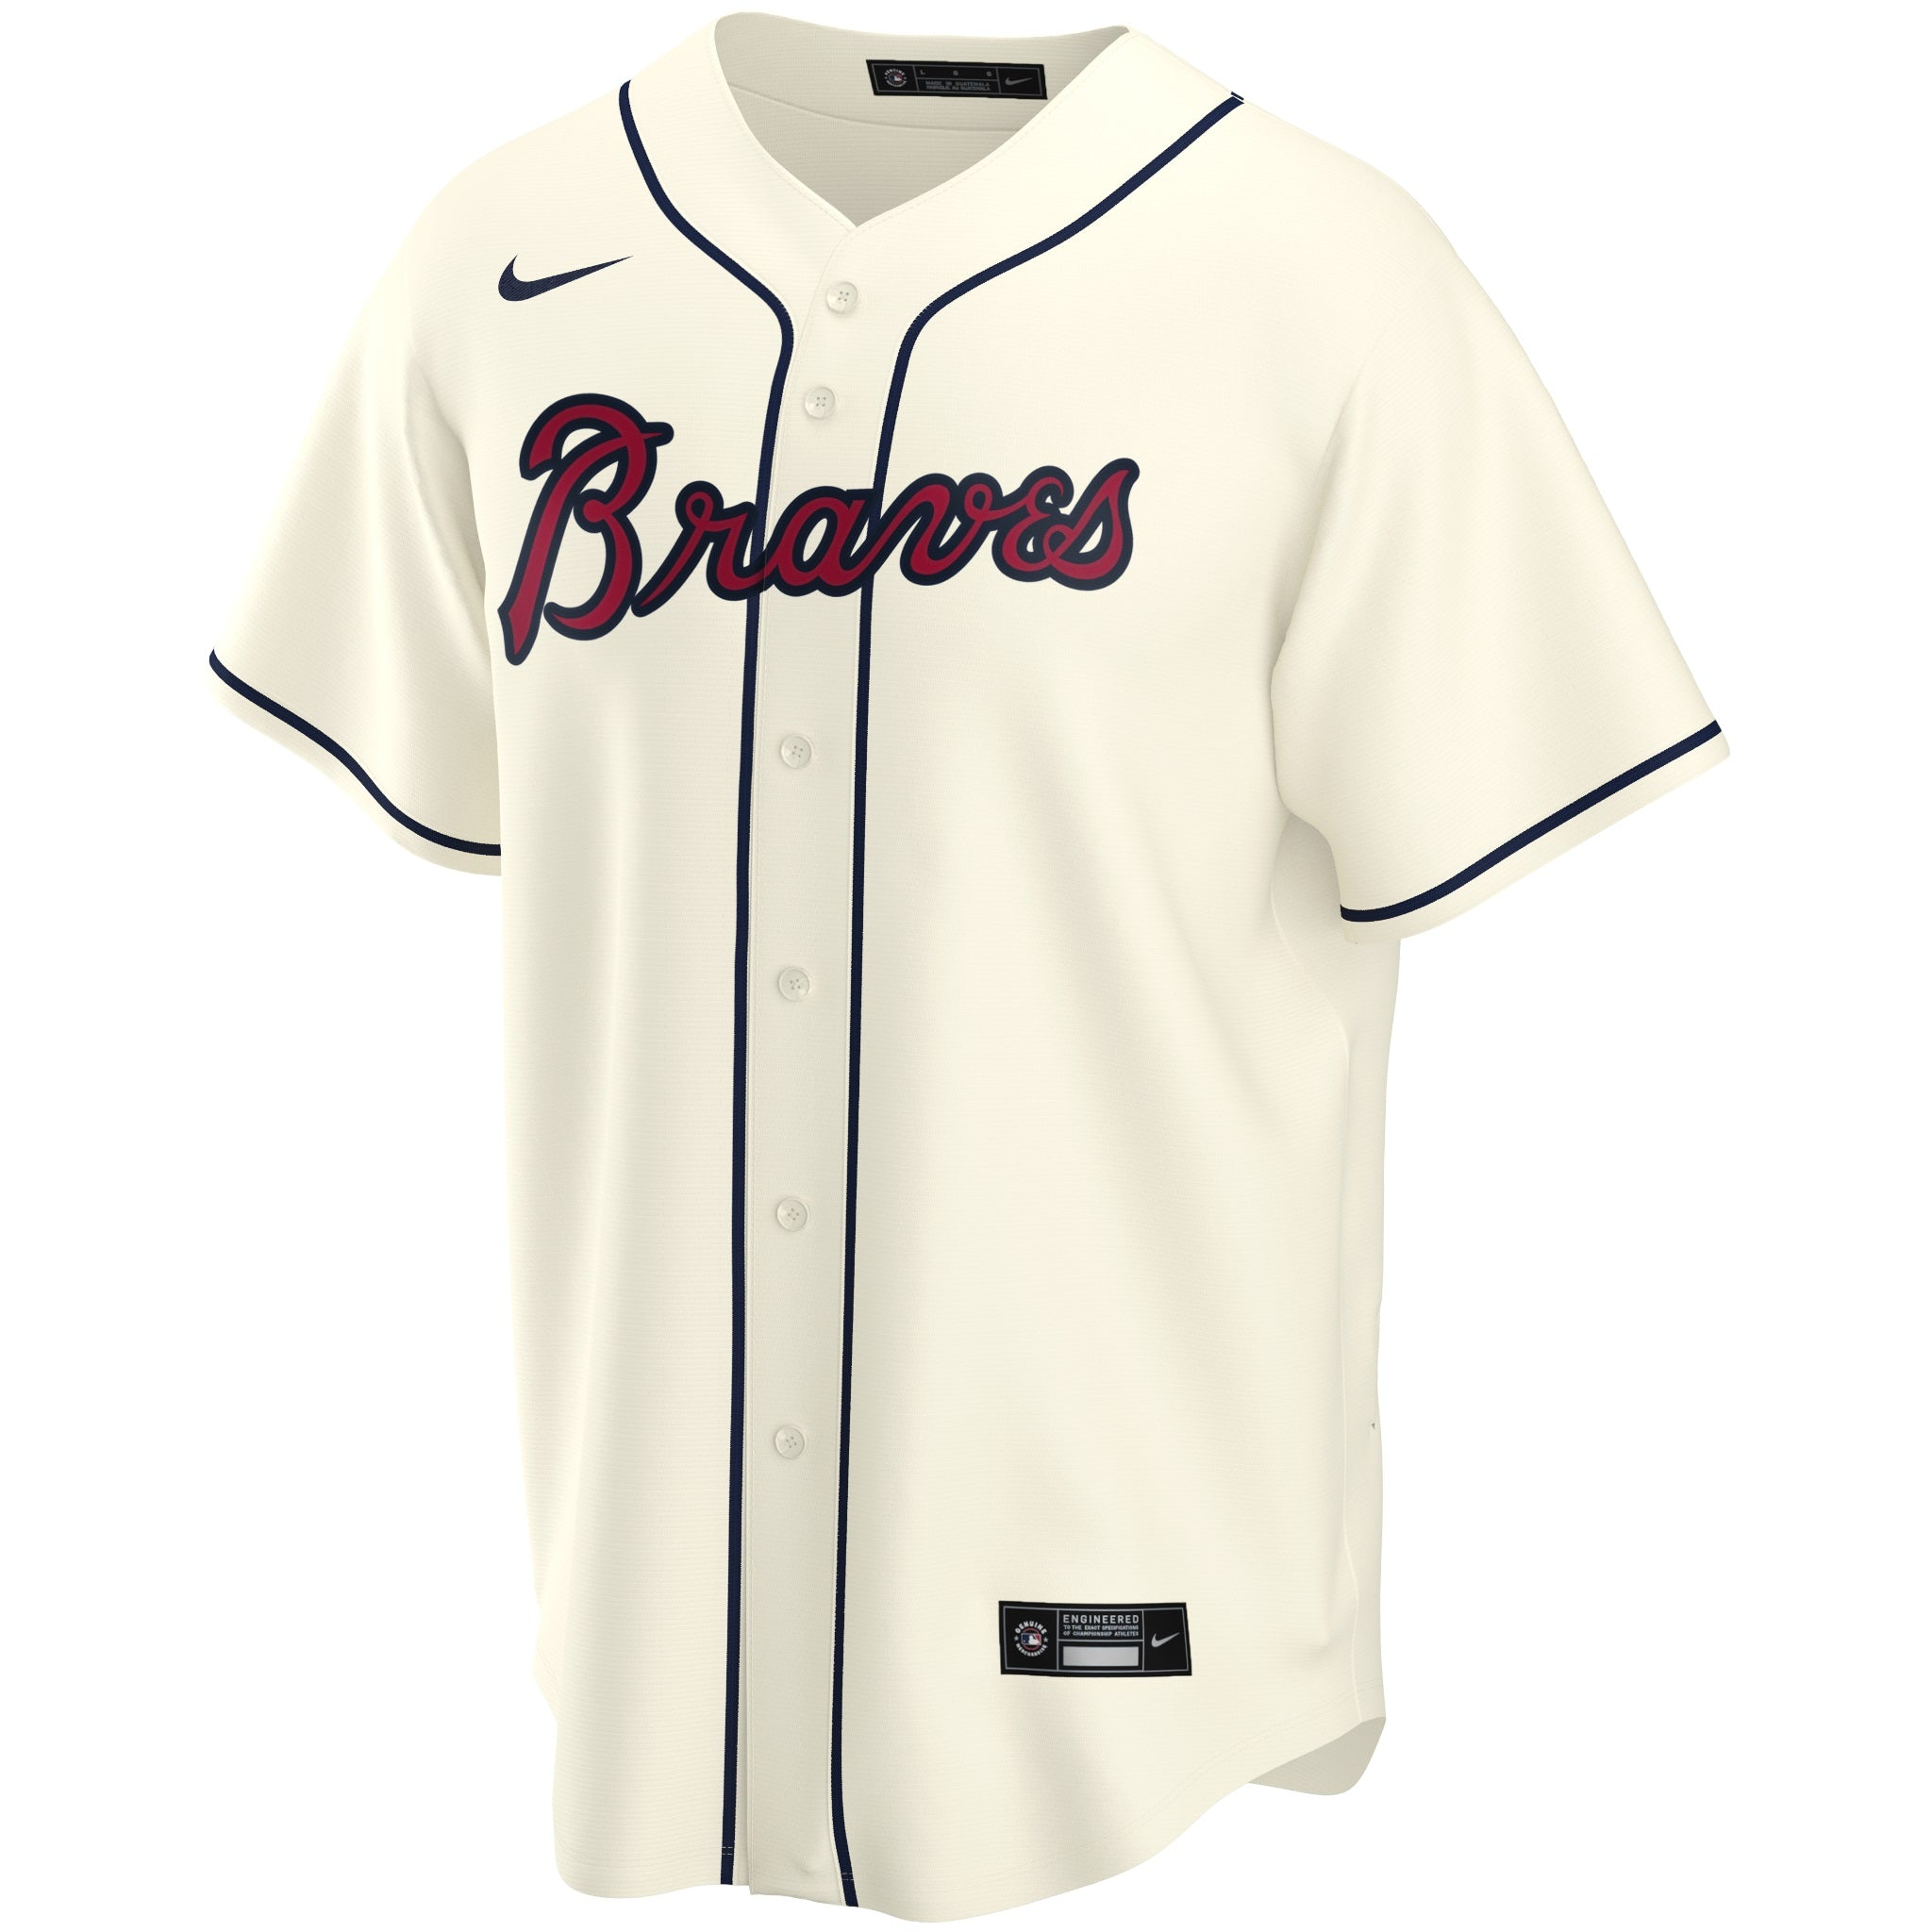 Ivory Nike Braves Home Jersey